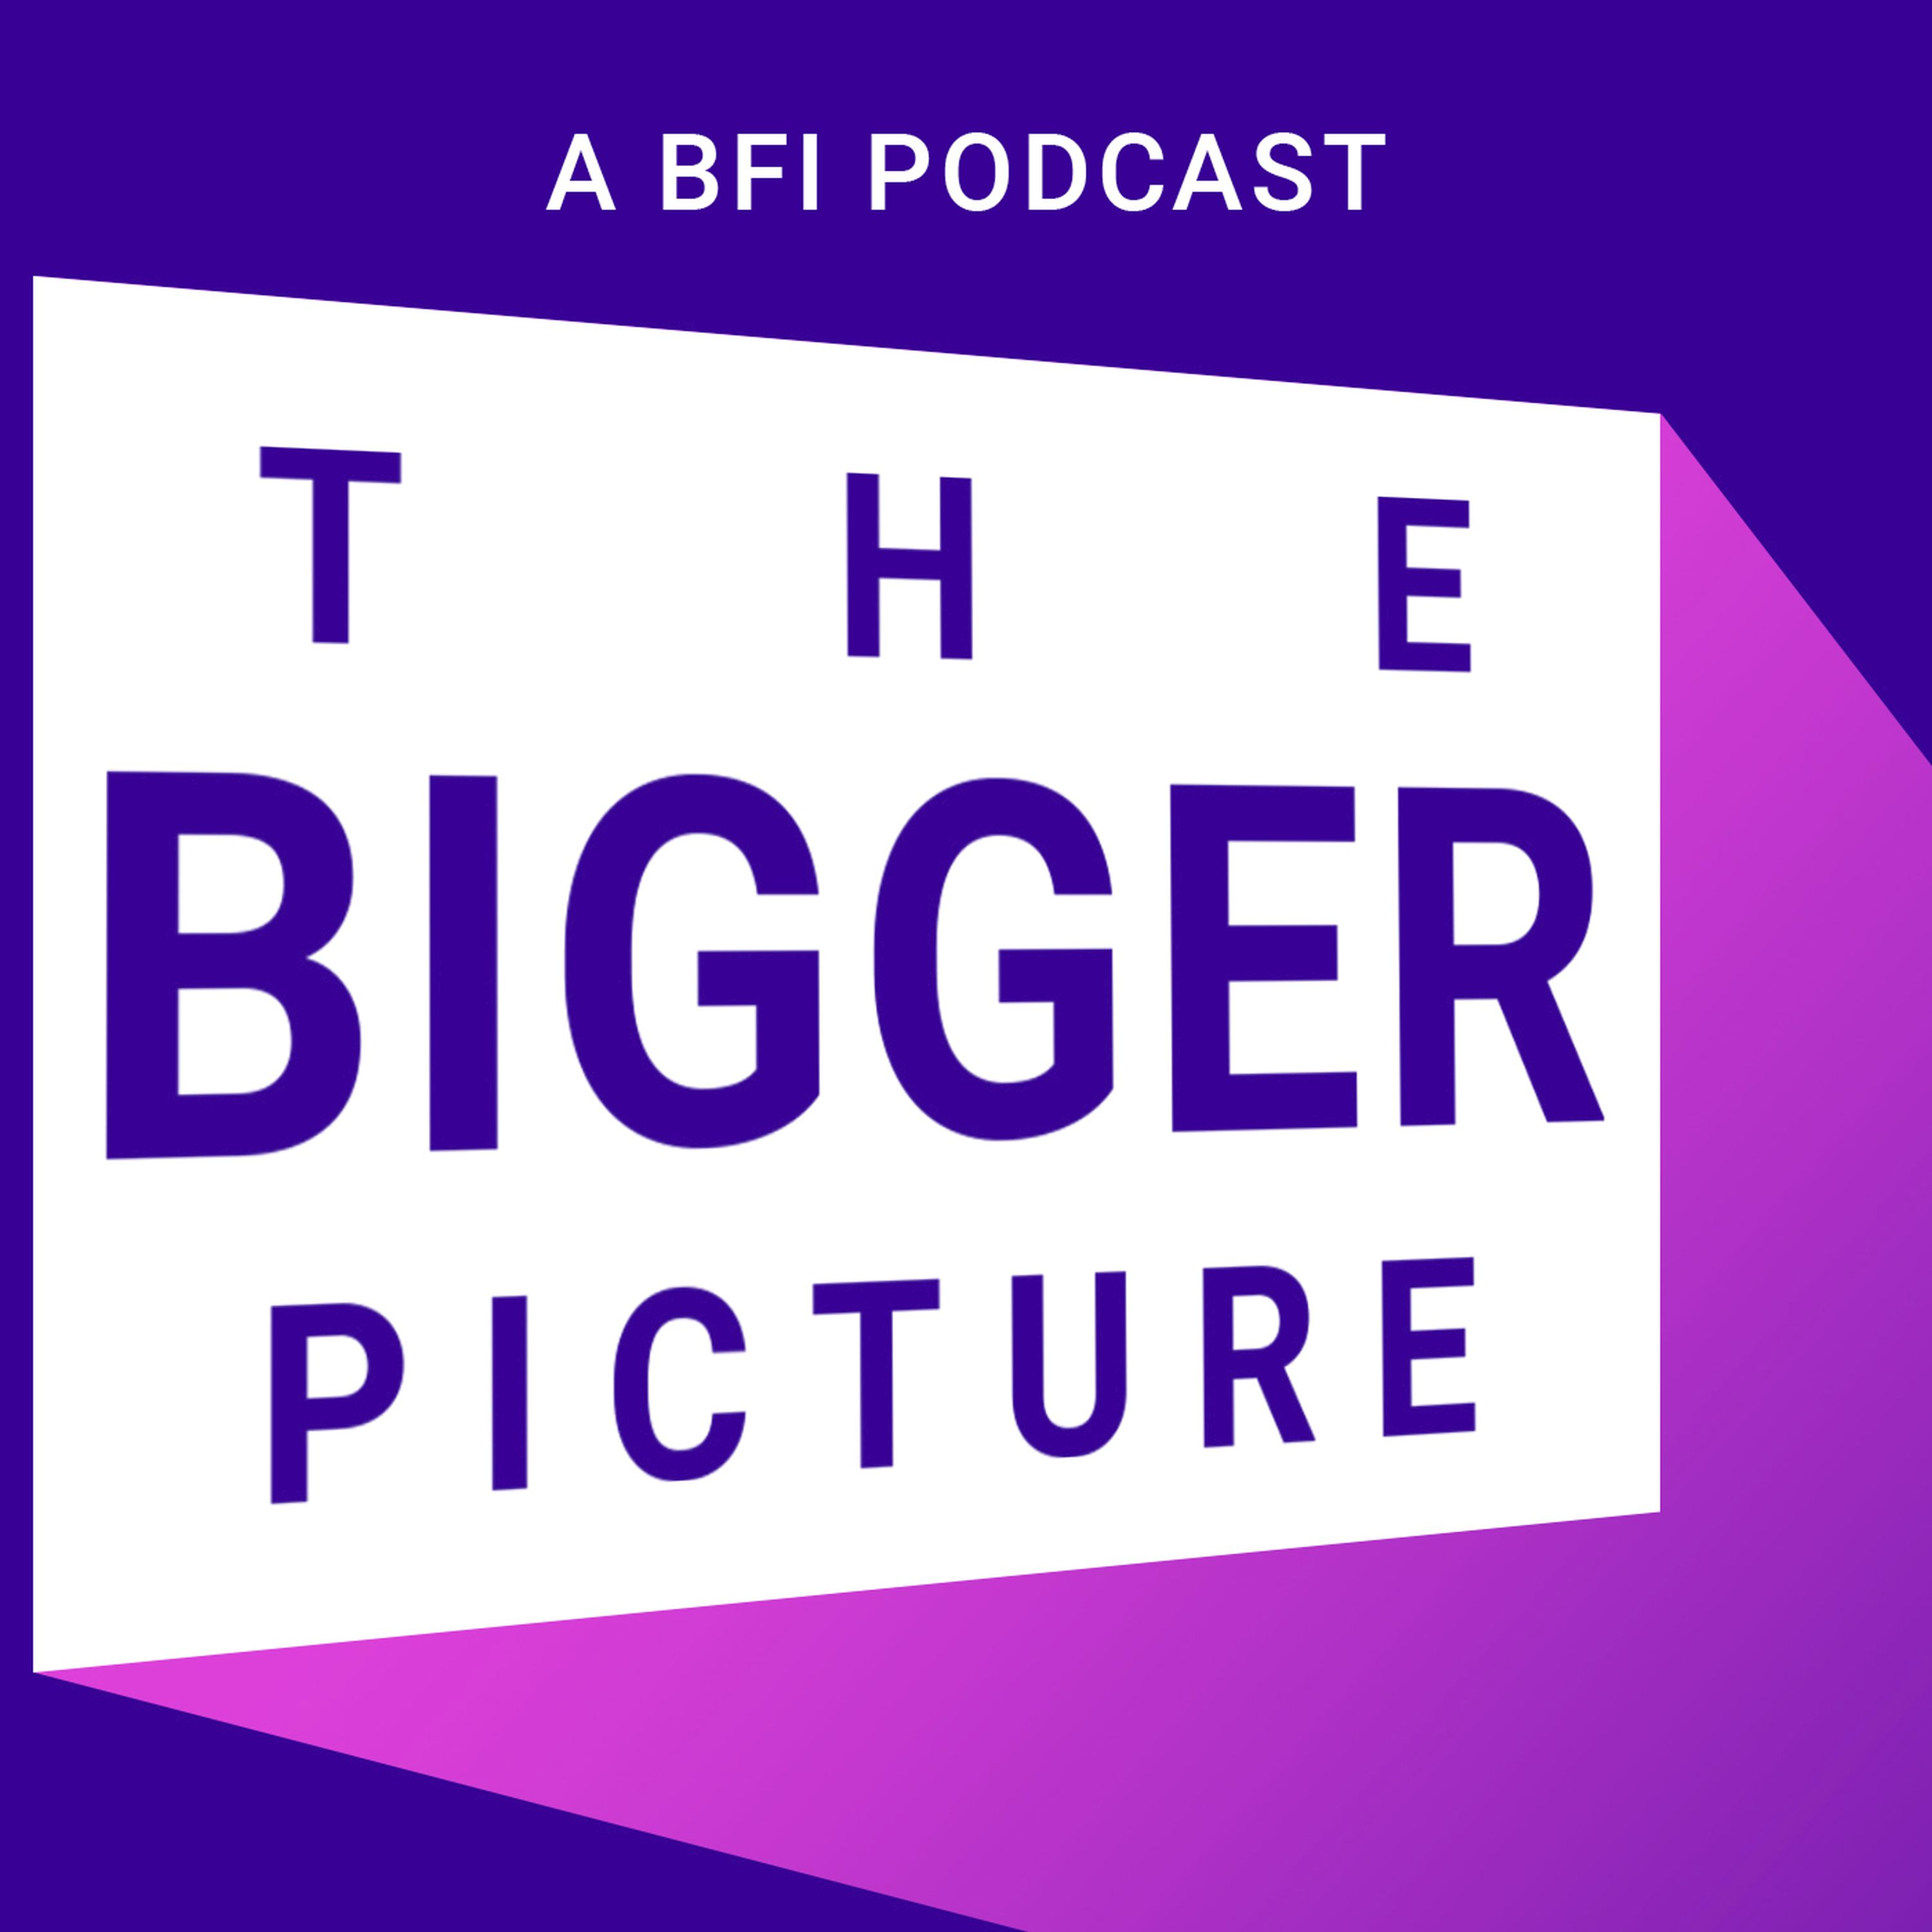 Pain and Glory: Making agony entertaining | The Bigger Picture, presented by The British Film Institute on acast